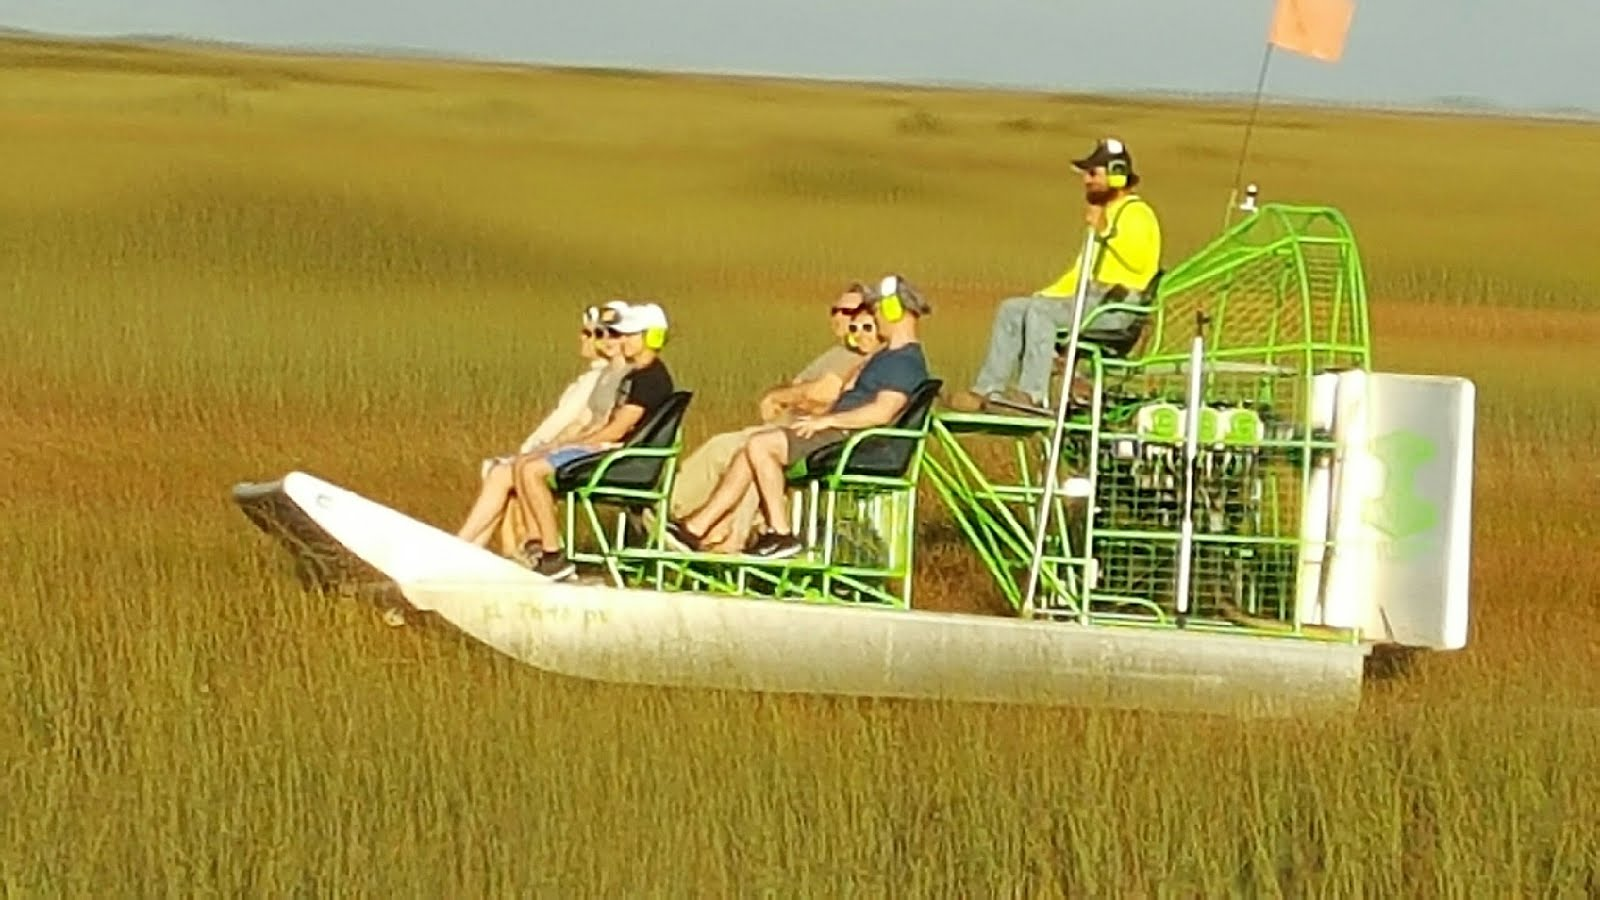 #evergladesairboattours - Airboat In Everglades